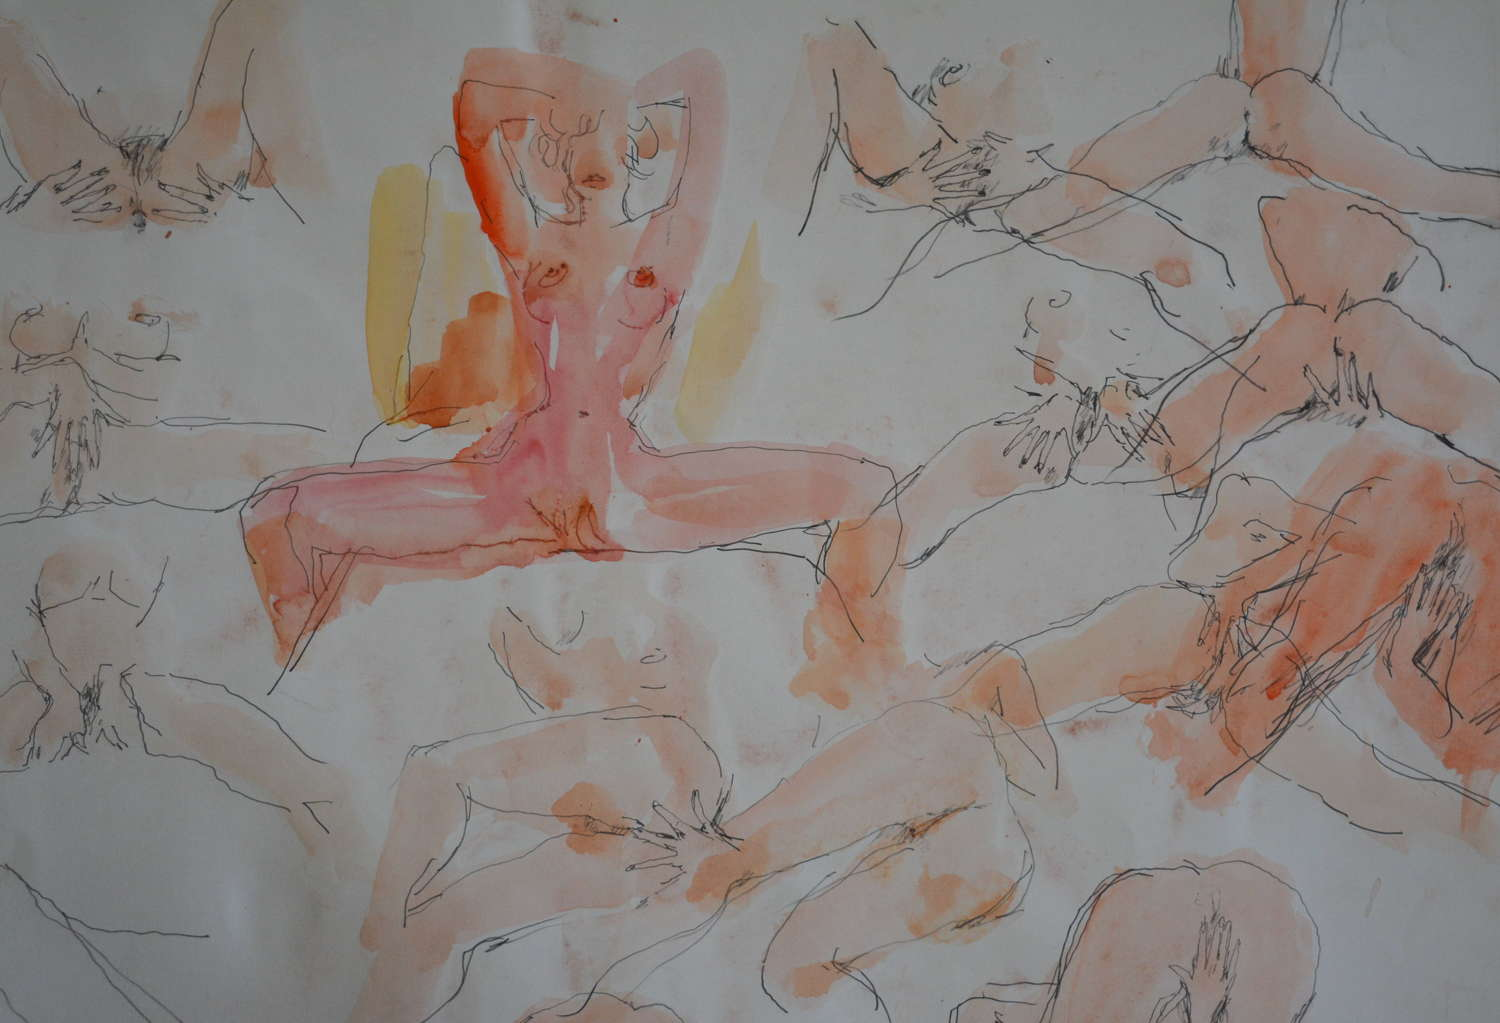 PETER COLLINS PEN AND WASH STUDY OF A FEMALE NUDE